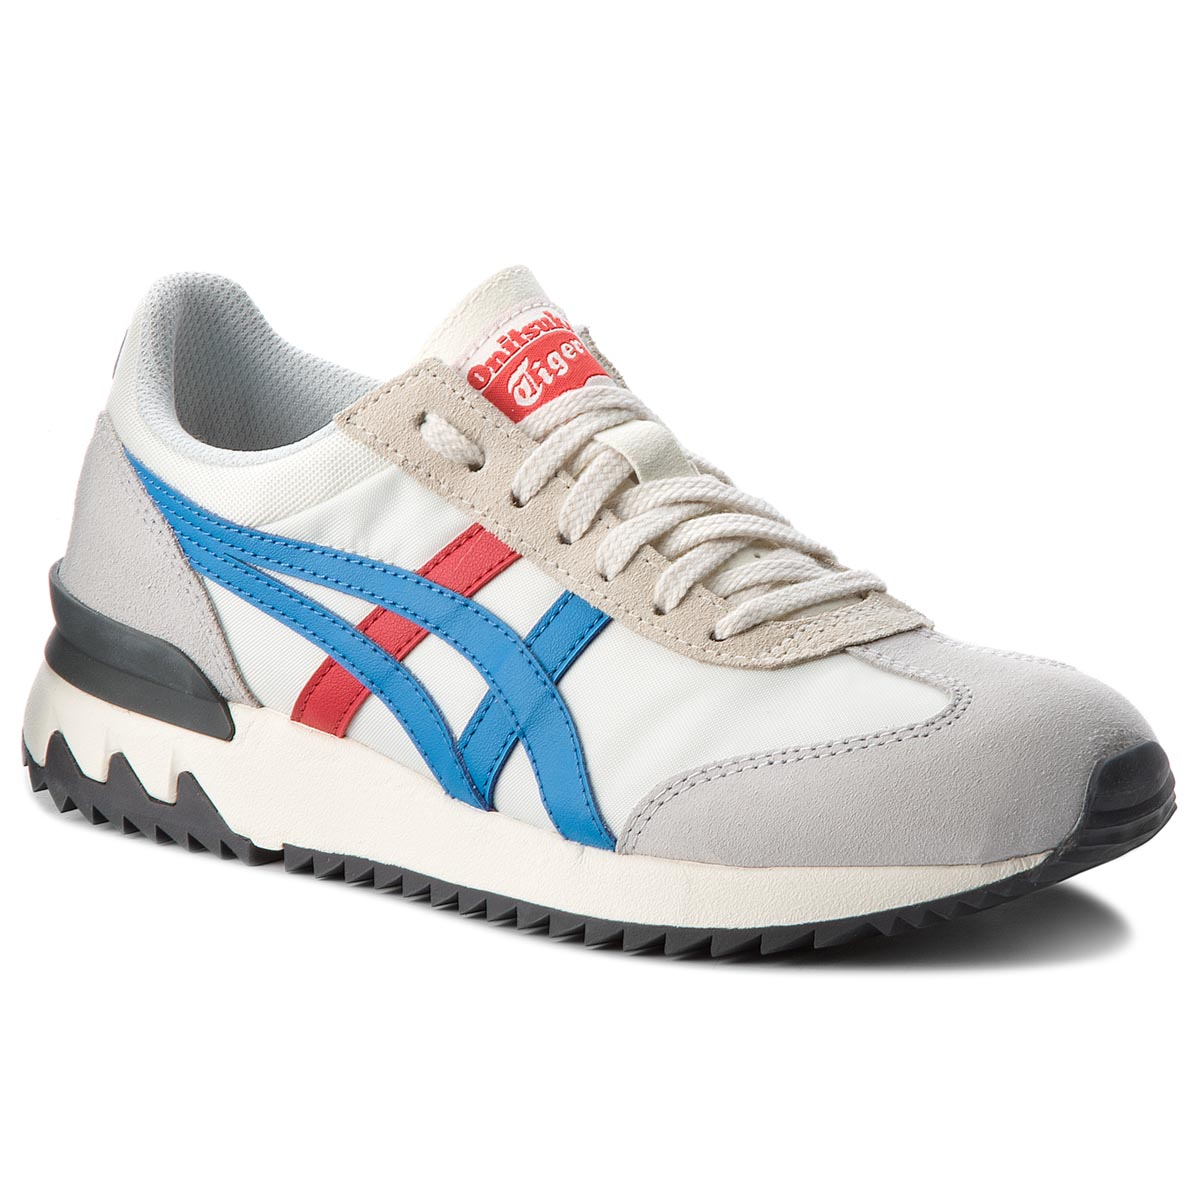 Sneaker Onitsuka Tiger Sneakers ONITSUKA TIGER - California 78 Ex 1183A194 Cream/Directoire Blue 100